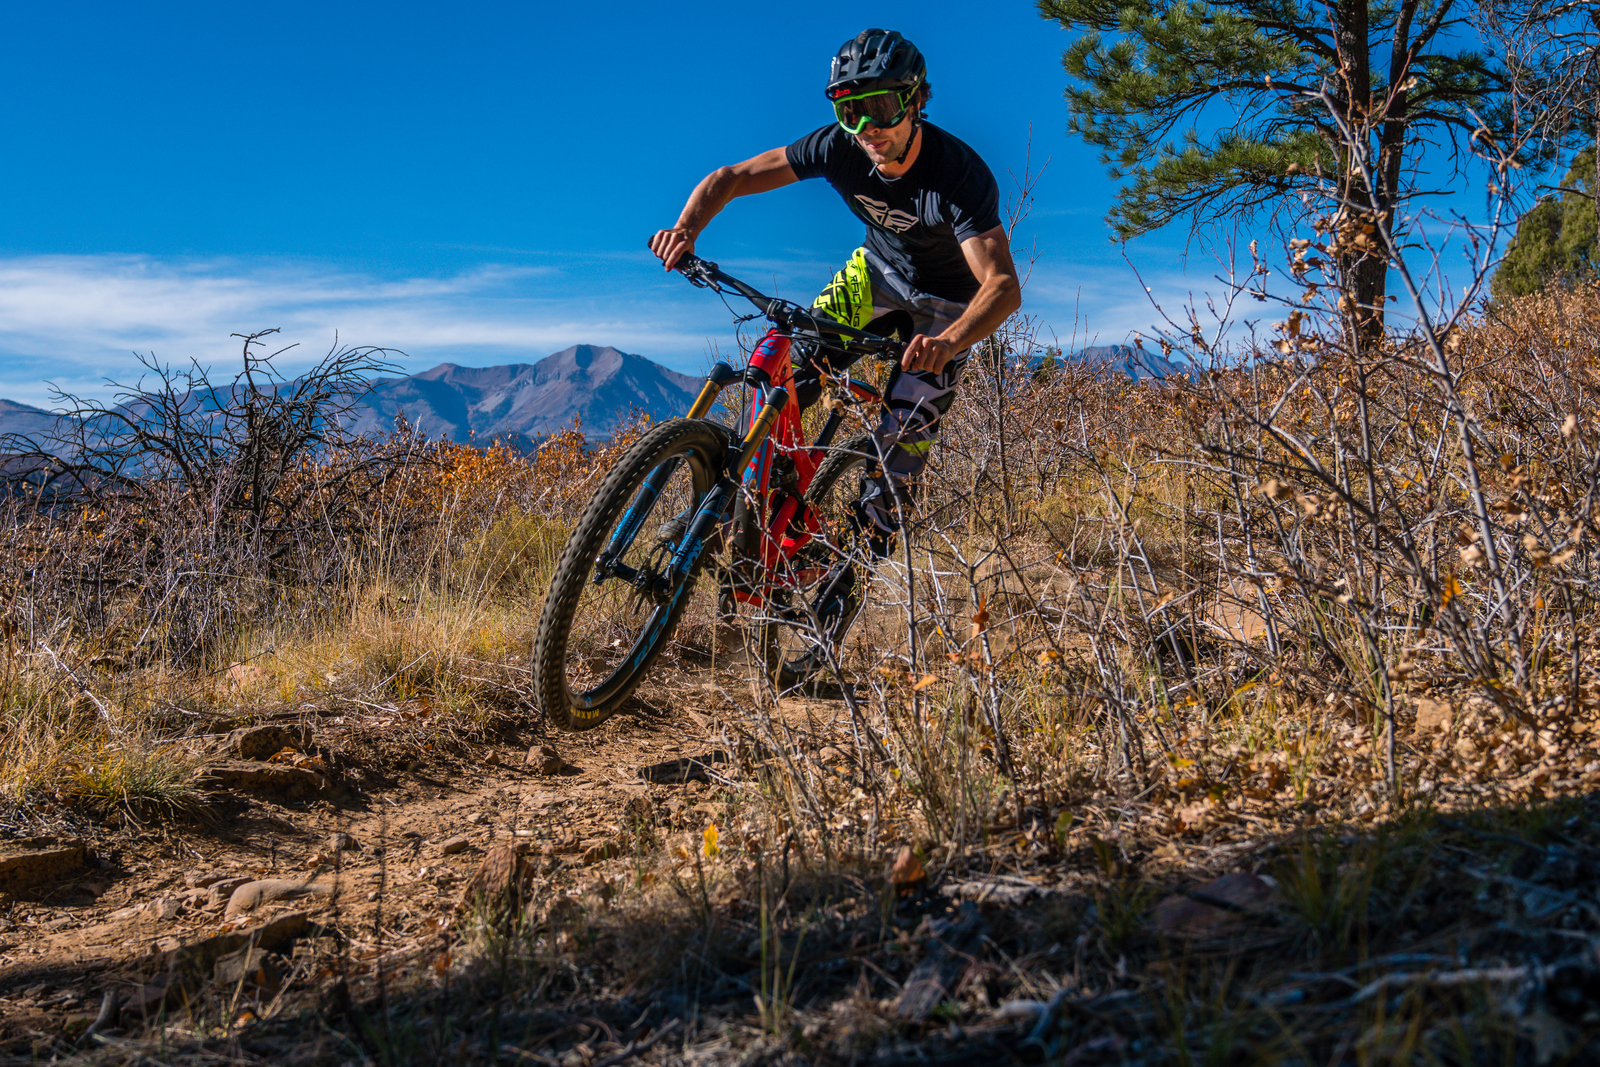 Adam Snyder is here riding in Animas Mountain in Durango, CO